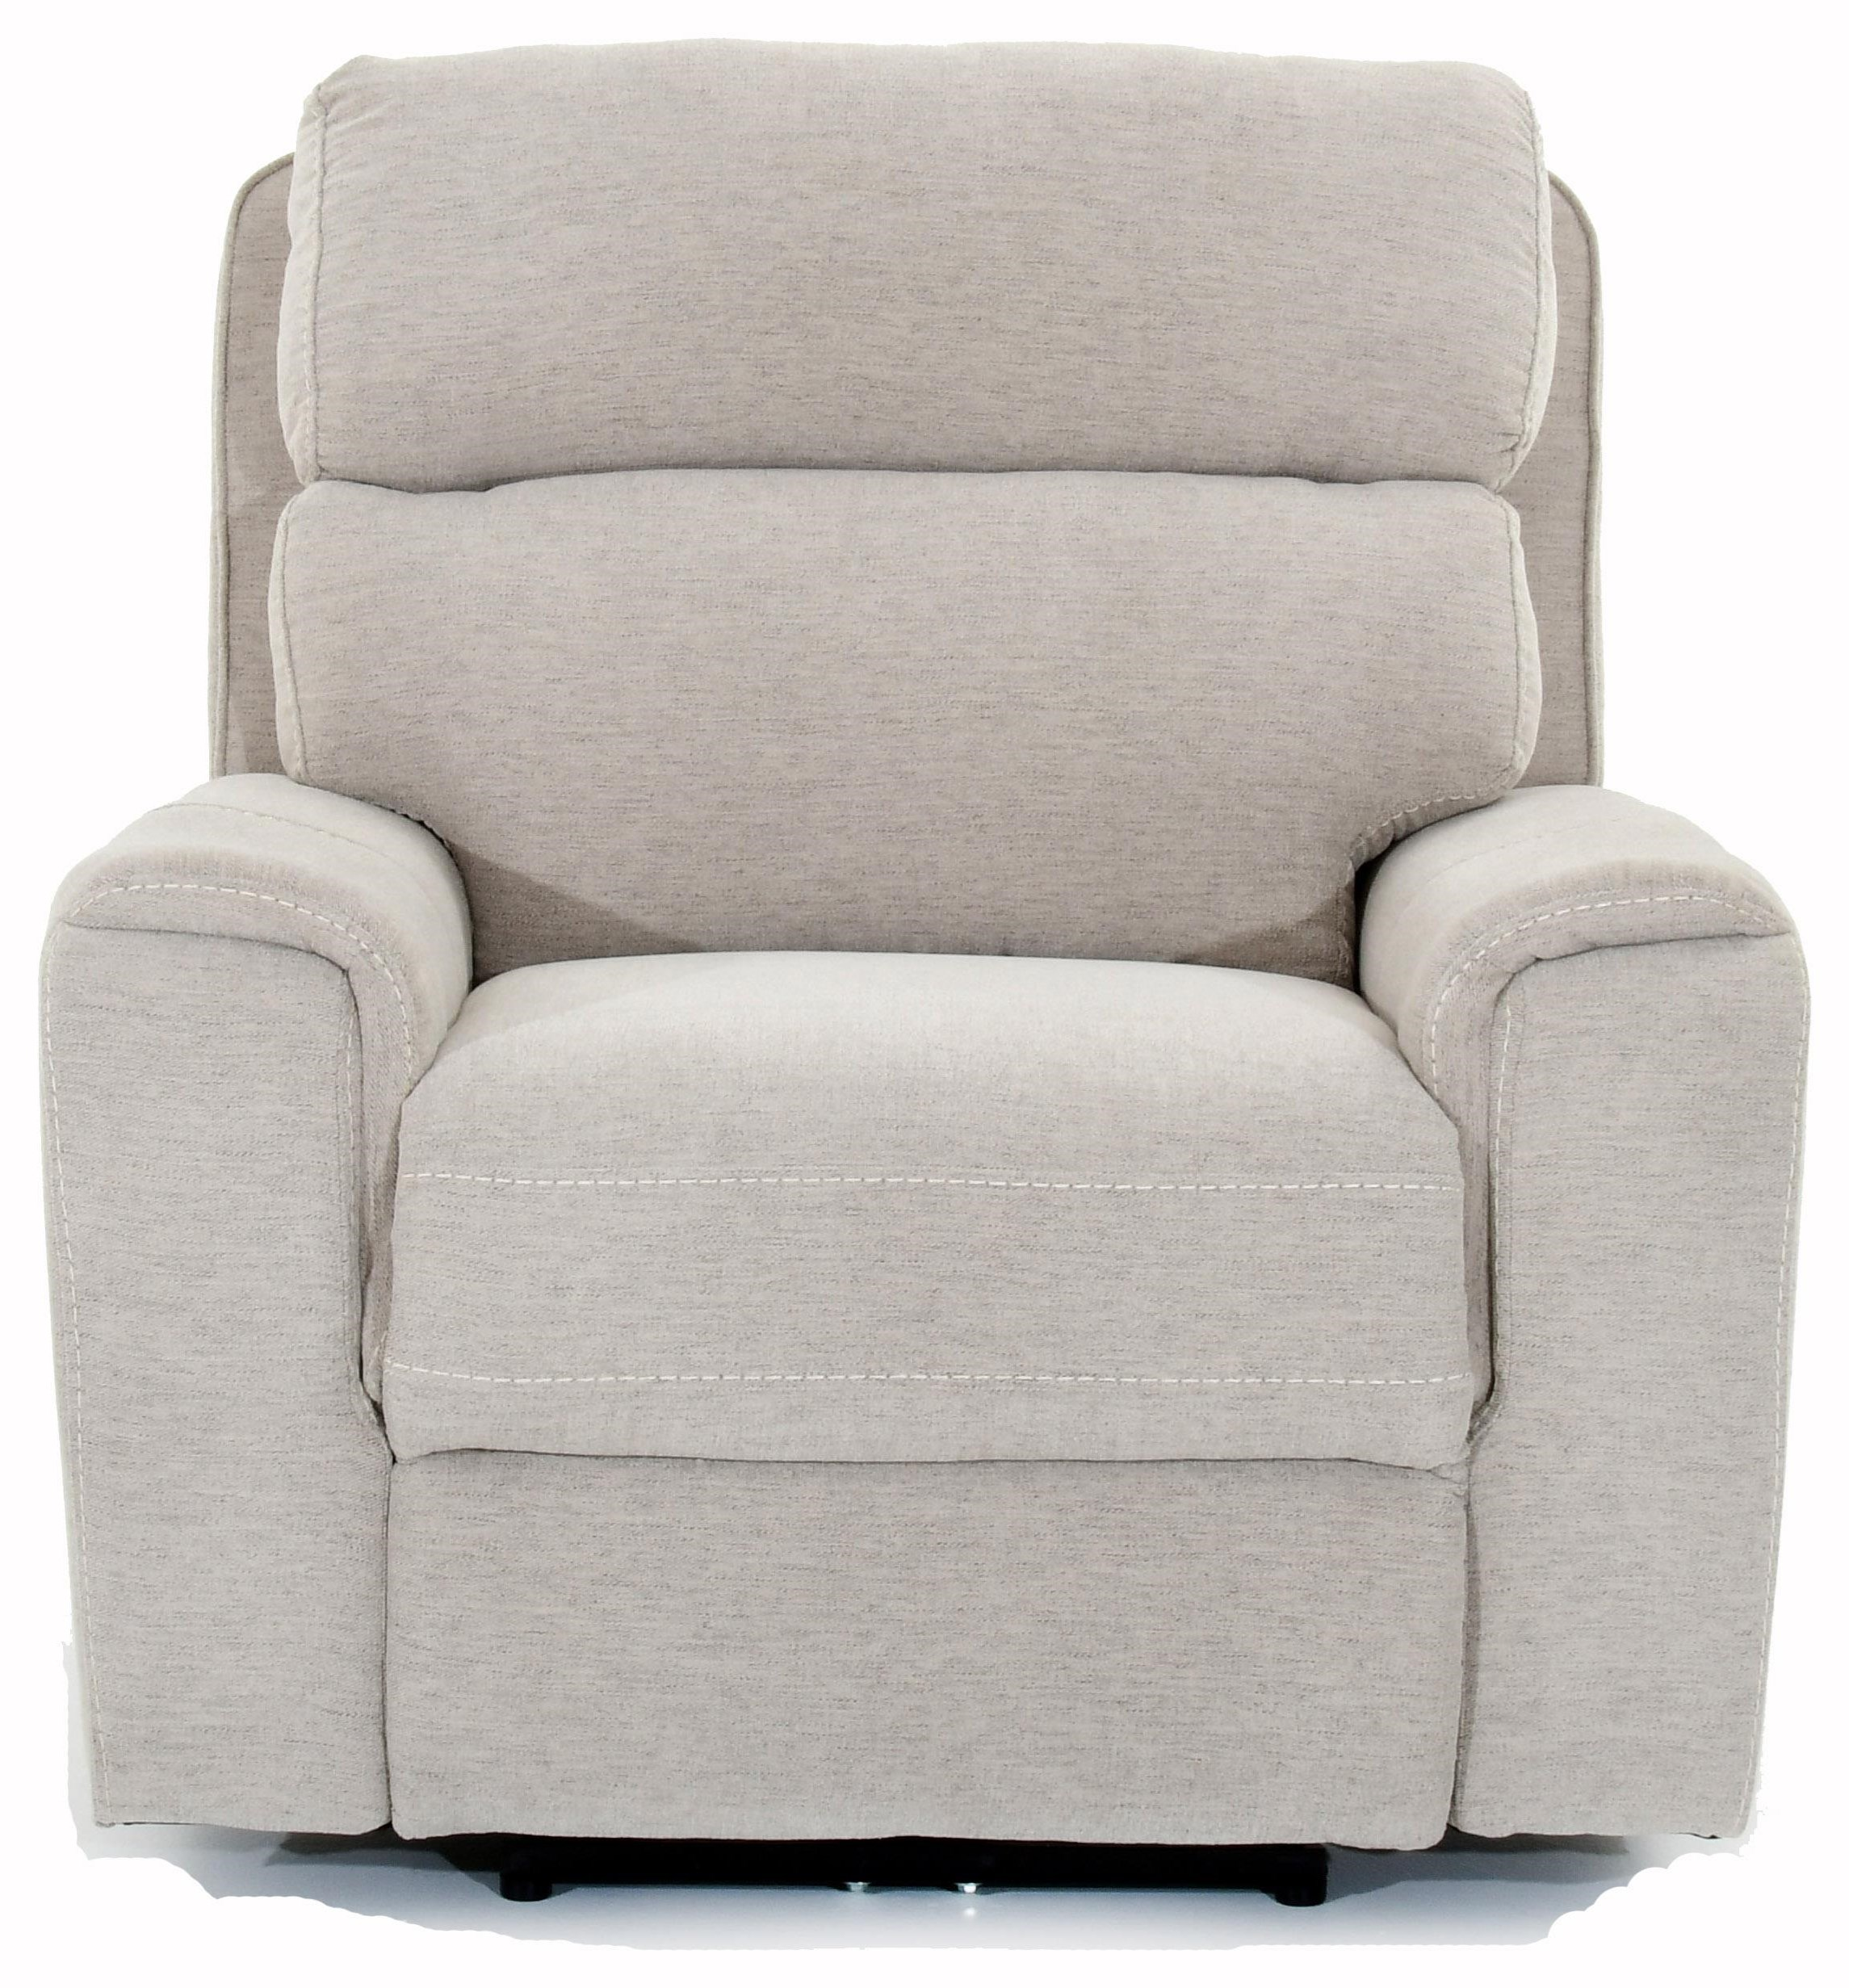 Oberon Power Recliner by Trend Resources International at Baer's Furniture